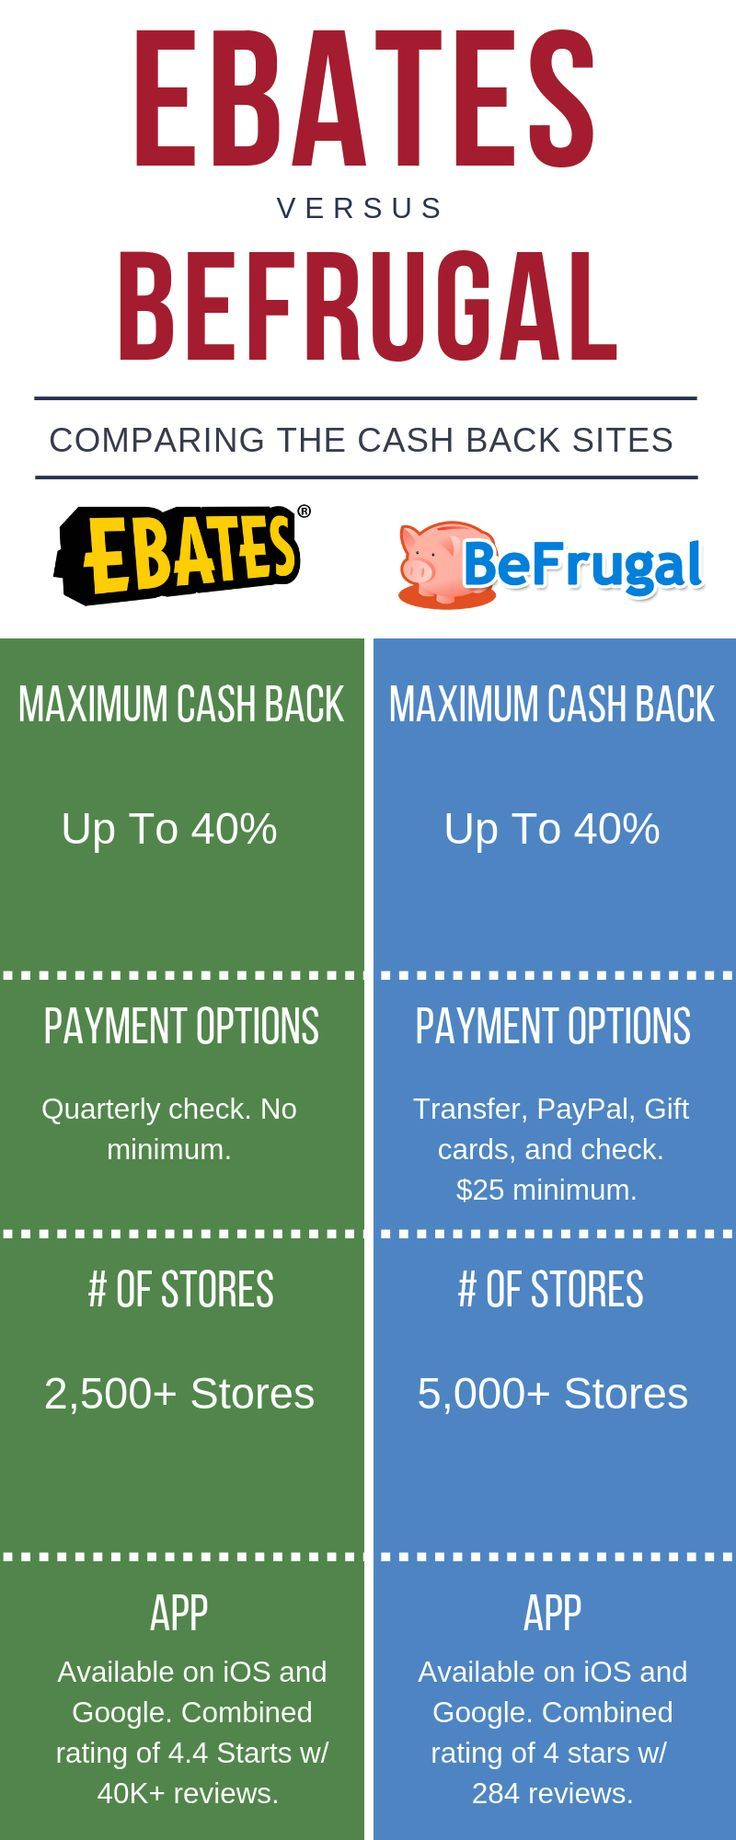 BeFrugal Review 2018: Legit Or Scam? | Personal Finance Tips